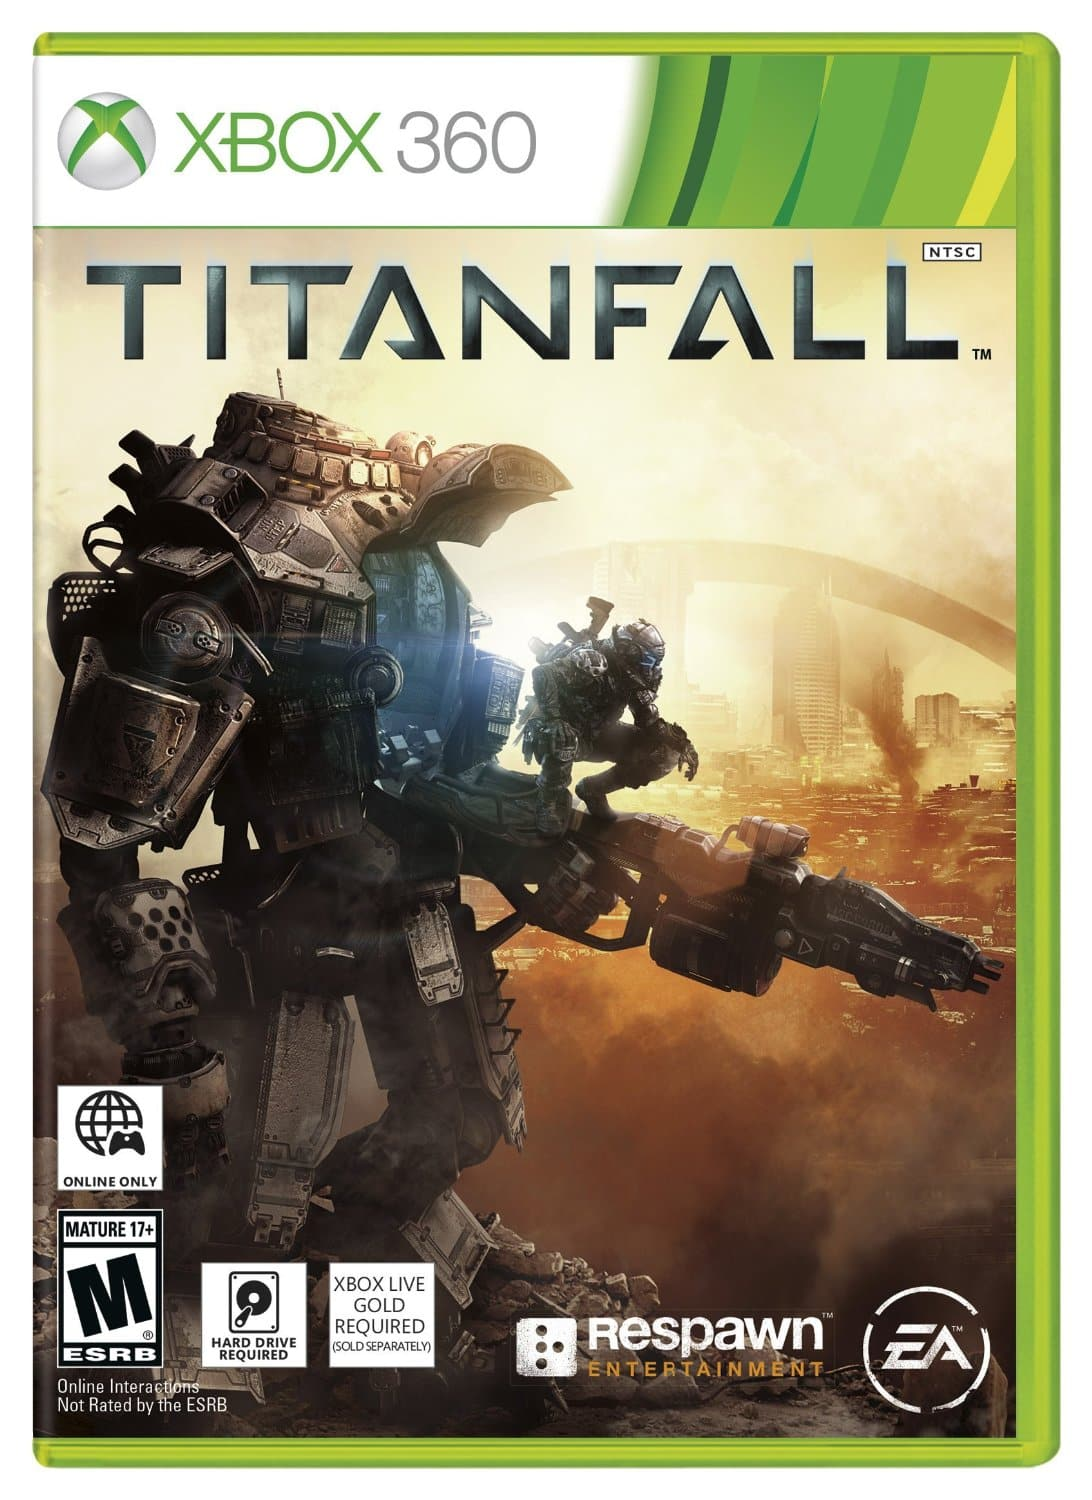 Titanfall for Xbox 360 - regular price $59.99 - today while supplies last $4.99 on Microsoftstore.com